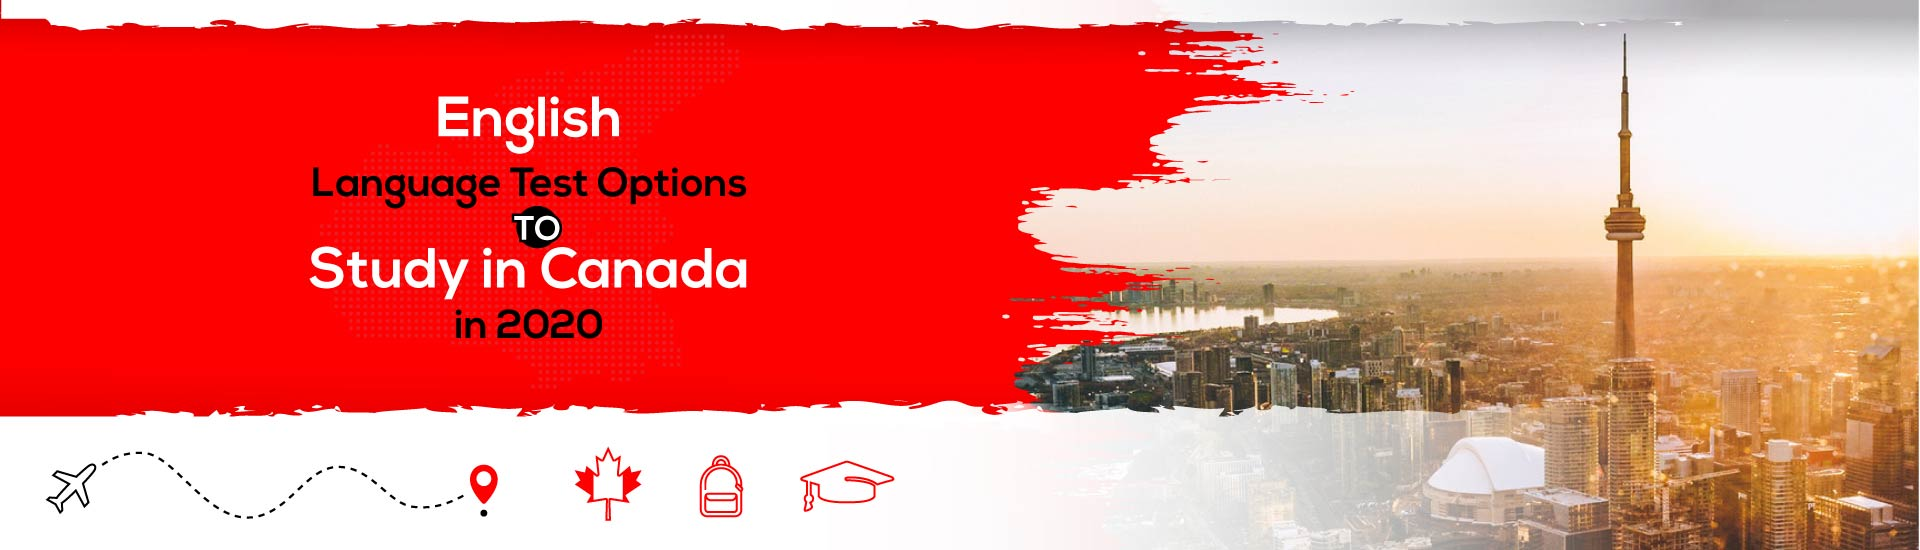 English Language Test options to study in Canada in 2020